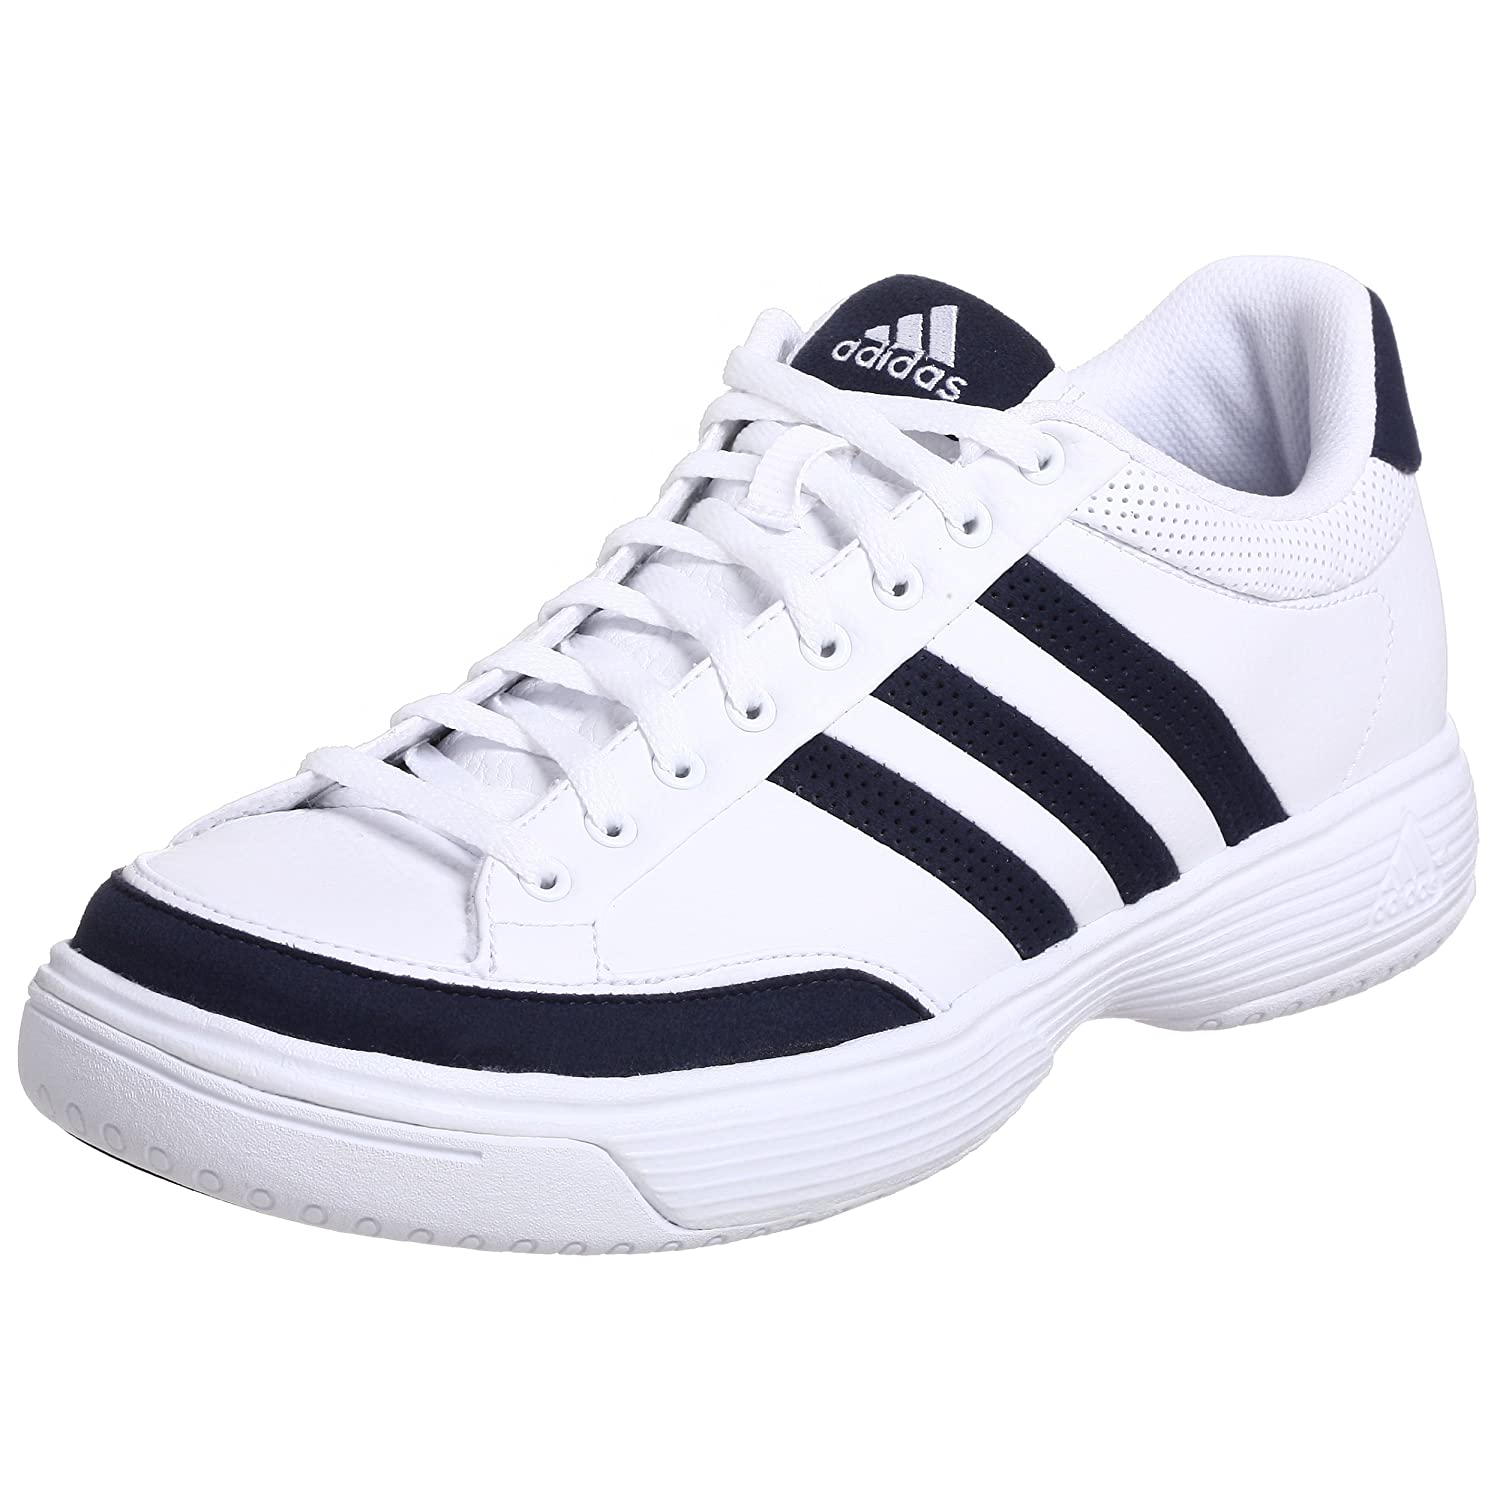 original shoe adidas for legend tennis shoe